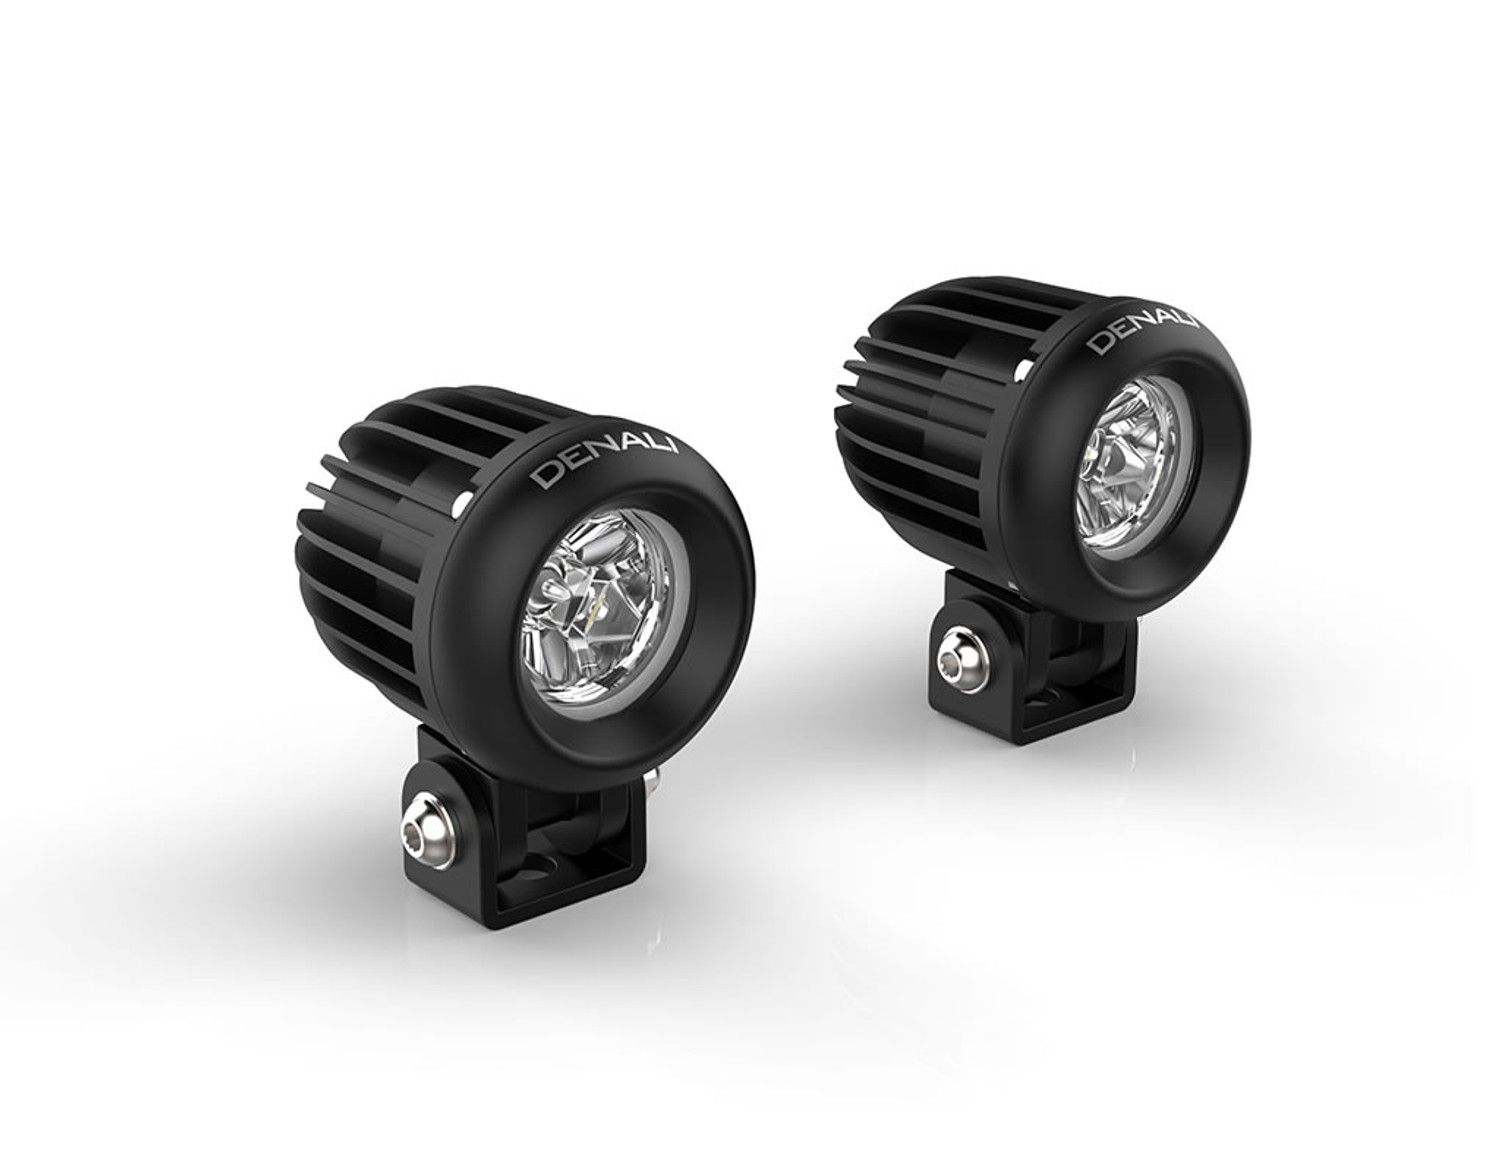 DENALI 2 0 D2 TriOptic LED Light Kit with DataDim Technology